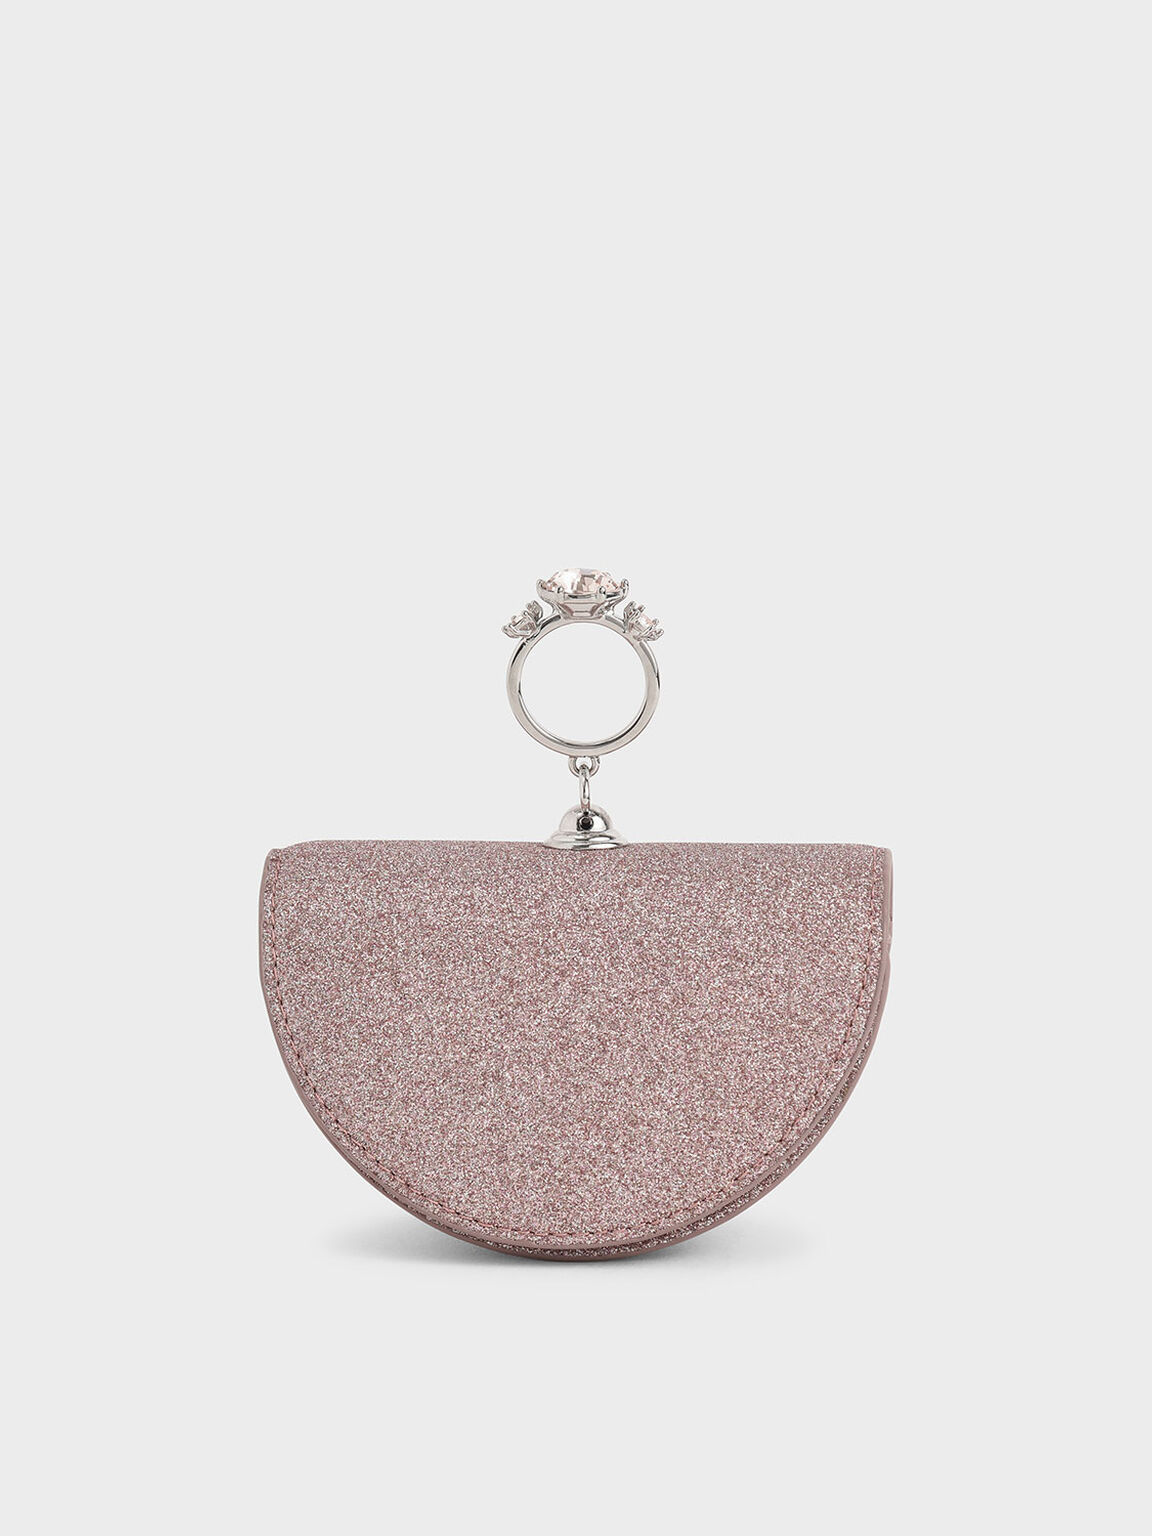 Embellished Glittered Semi-Circle Pouch, Rose Gold, hi-res